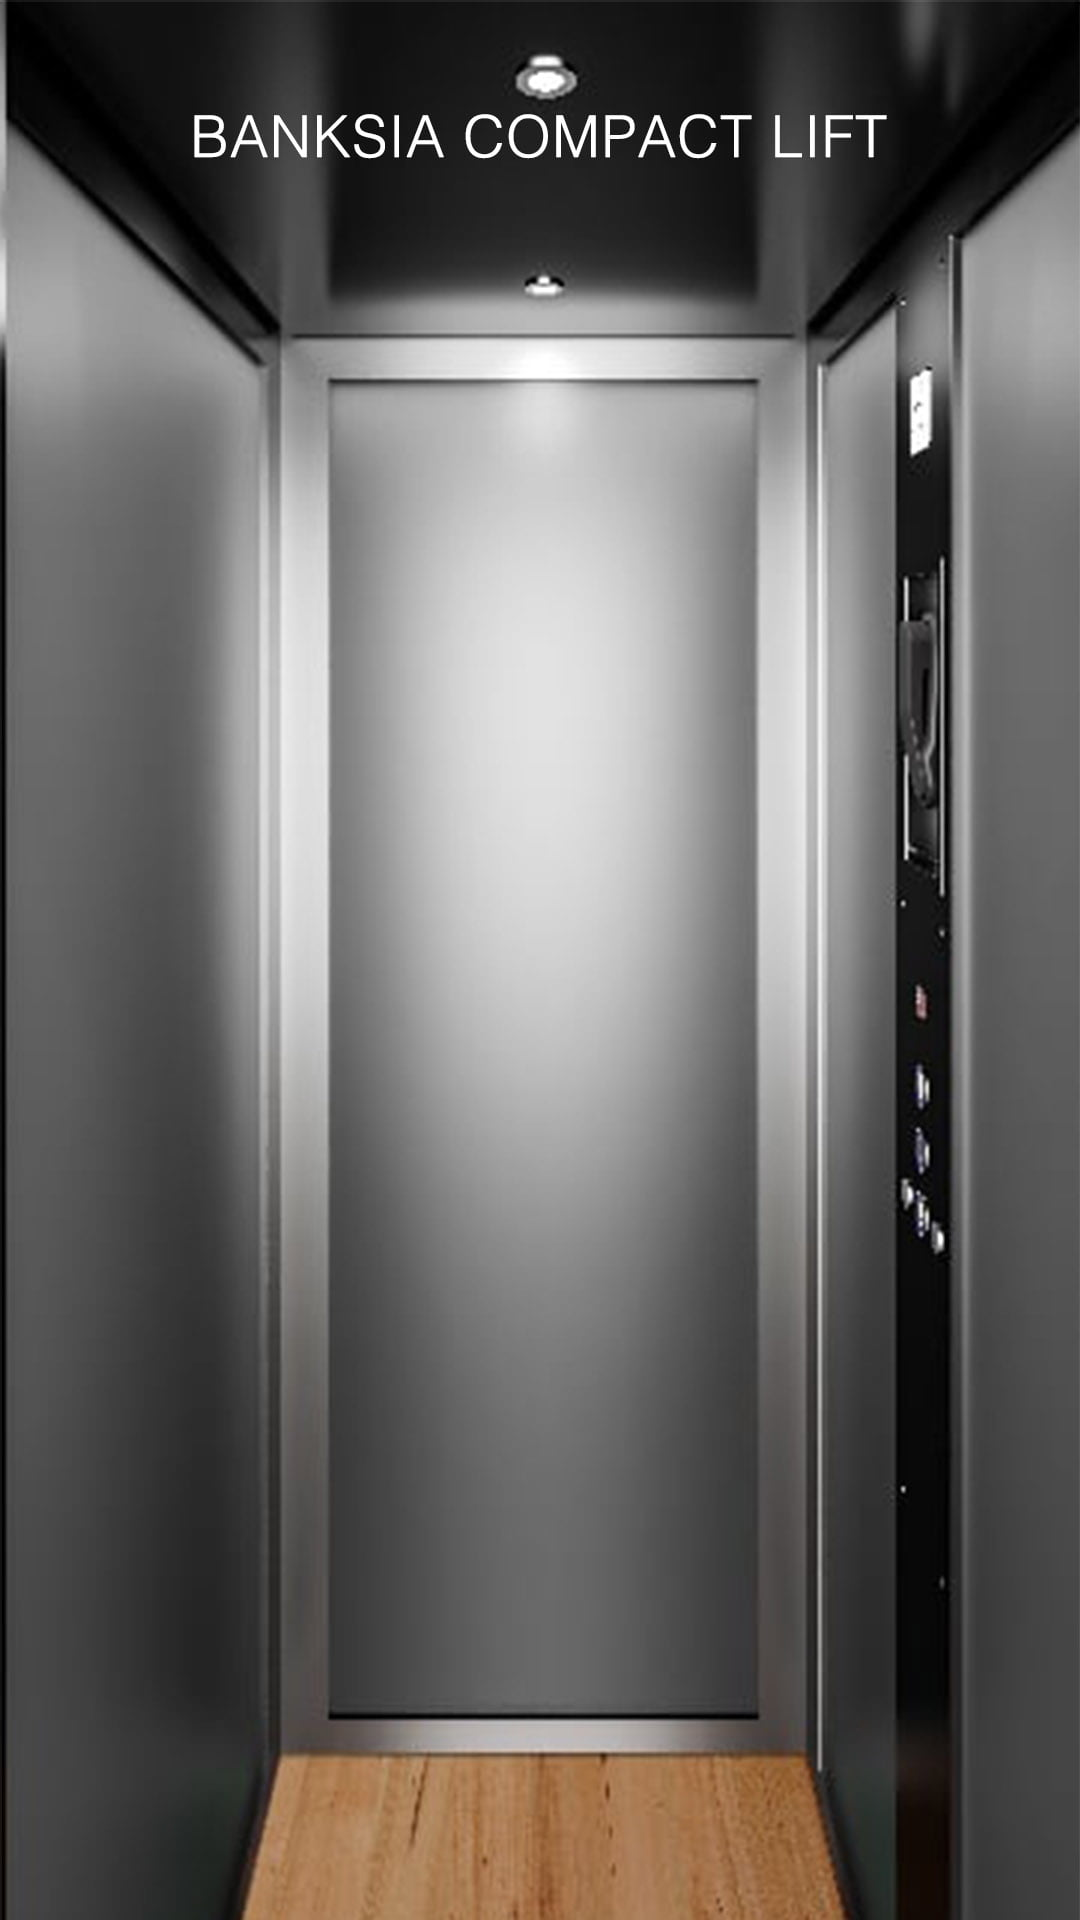 Banksia Compact Lift   Shotton Lifts in Melbourne